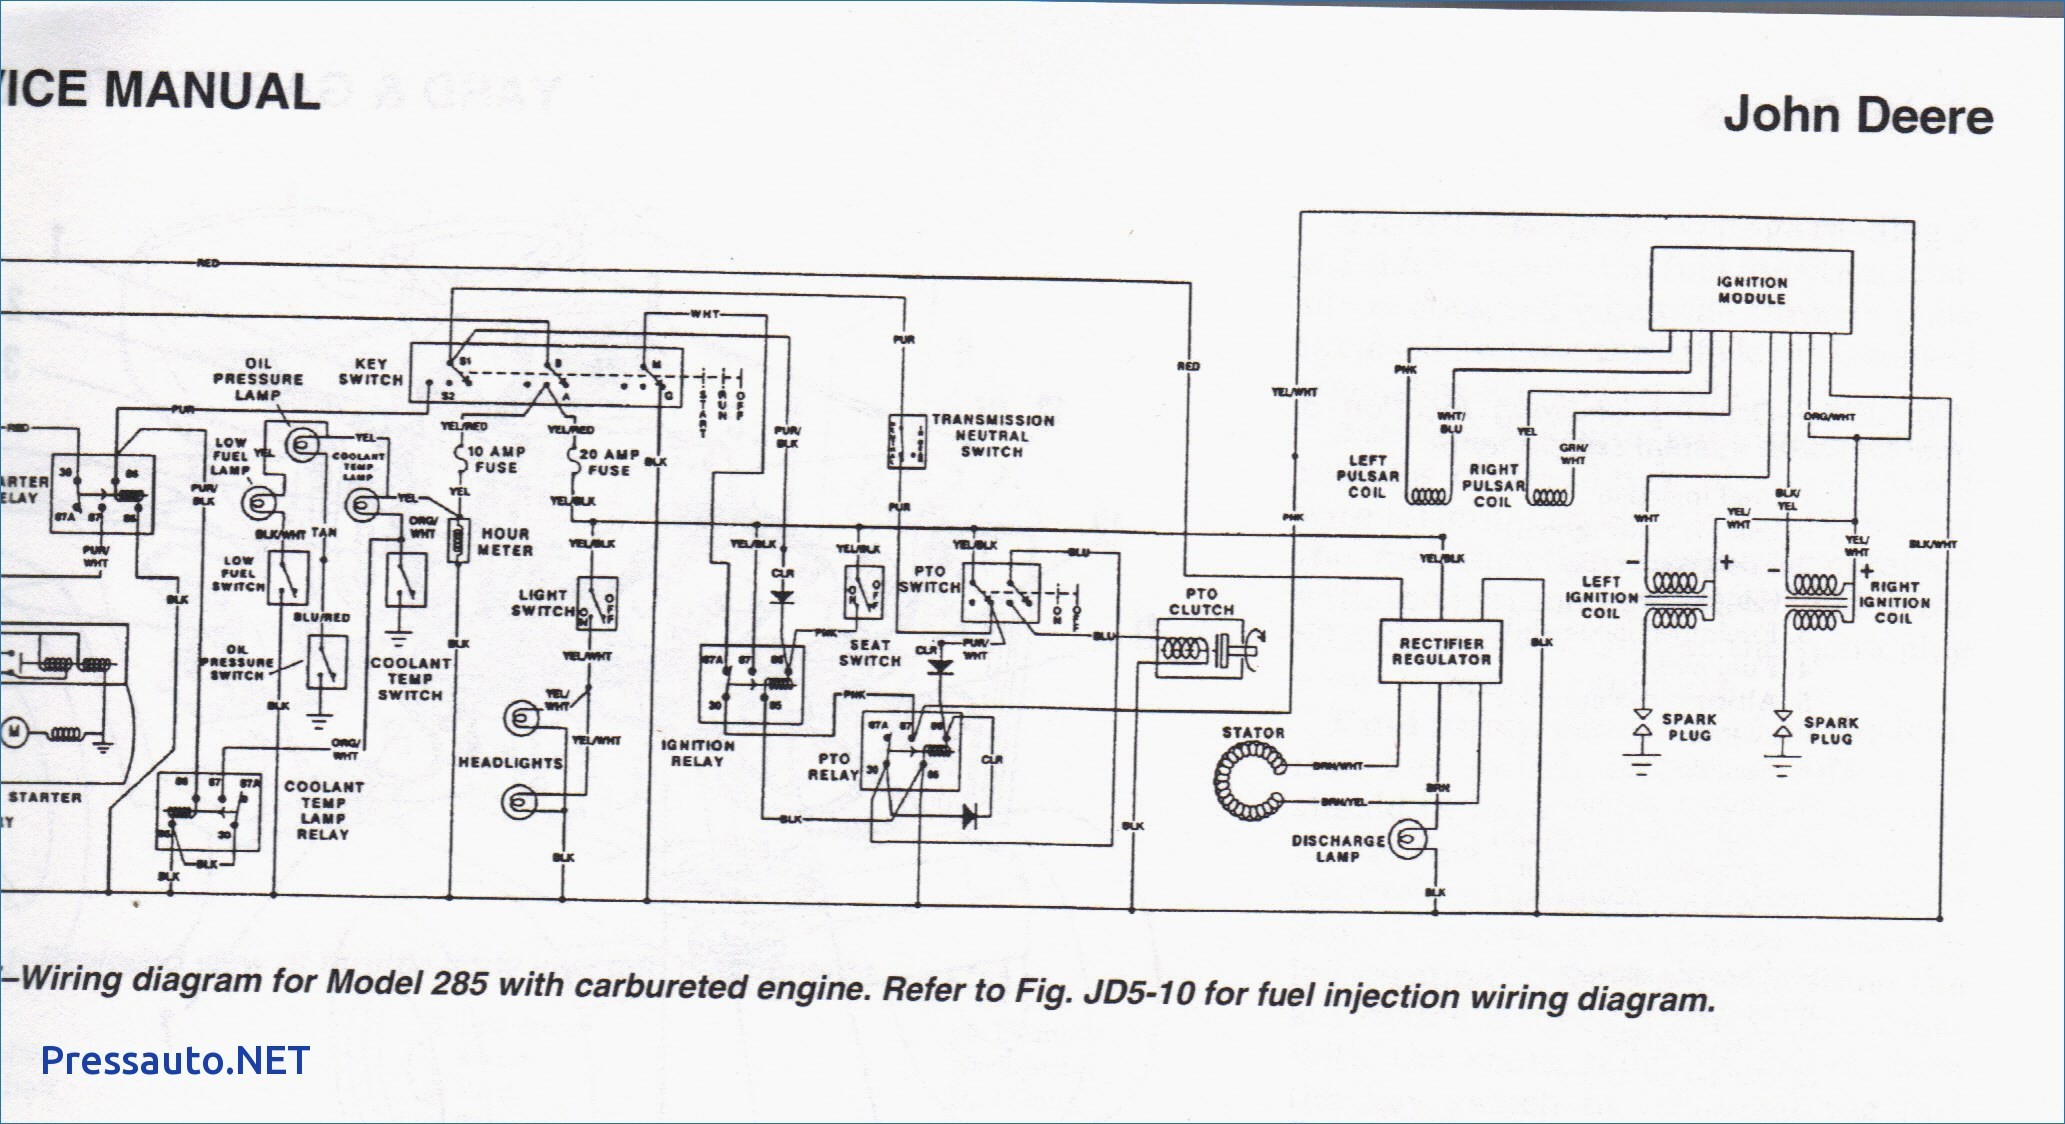 John Deere 50 Wiring Harness | Wiring Diagram on john deere 318 wiring-diagram, john deere 6400 water pump, john deere electrical diagrams, john deere z225 wiring-diagram, john deere 755 wiring-diagram, john deere tractor engine diagrams, john deere 6400 fuel system, john deere 6400 timing, john deere 6400 battery, john deere l118 wiring-diagram, john deere 6400 fuse diagram, john deere 3010 wiring-diagram, john deere 6400 tractor, john deere model b engine diagram, john deere 6400 transmission, john deere 6400 troubleshooting, john deere 4430 wiring-diagram, john deere 6400 air conditioning, john deere schematics, john deere tractor wiring,